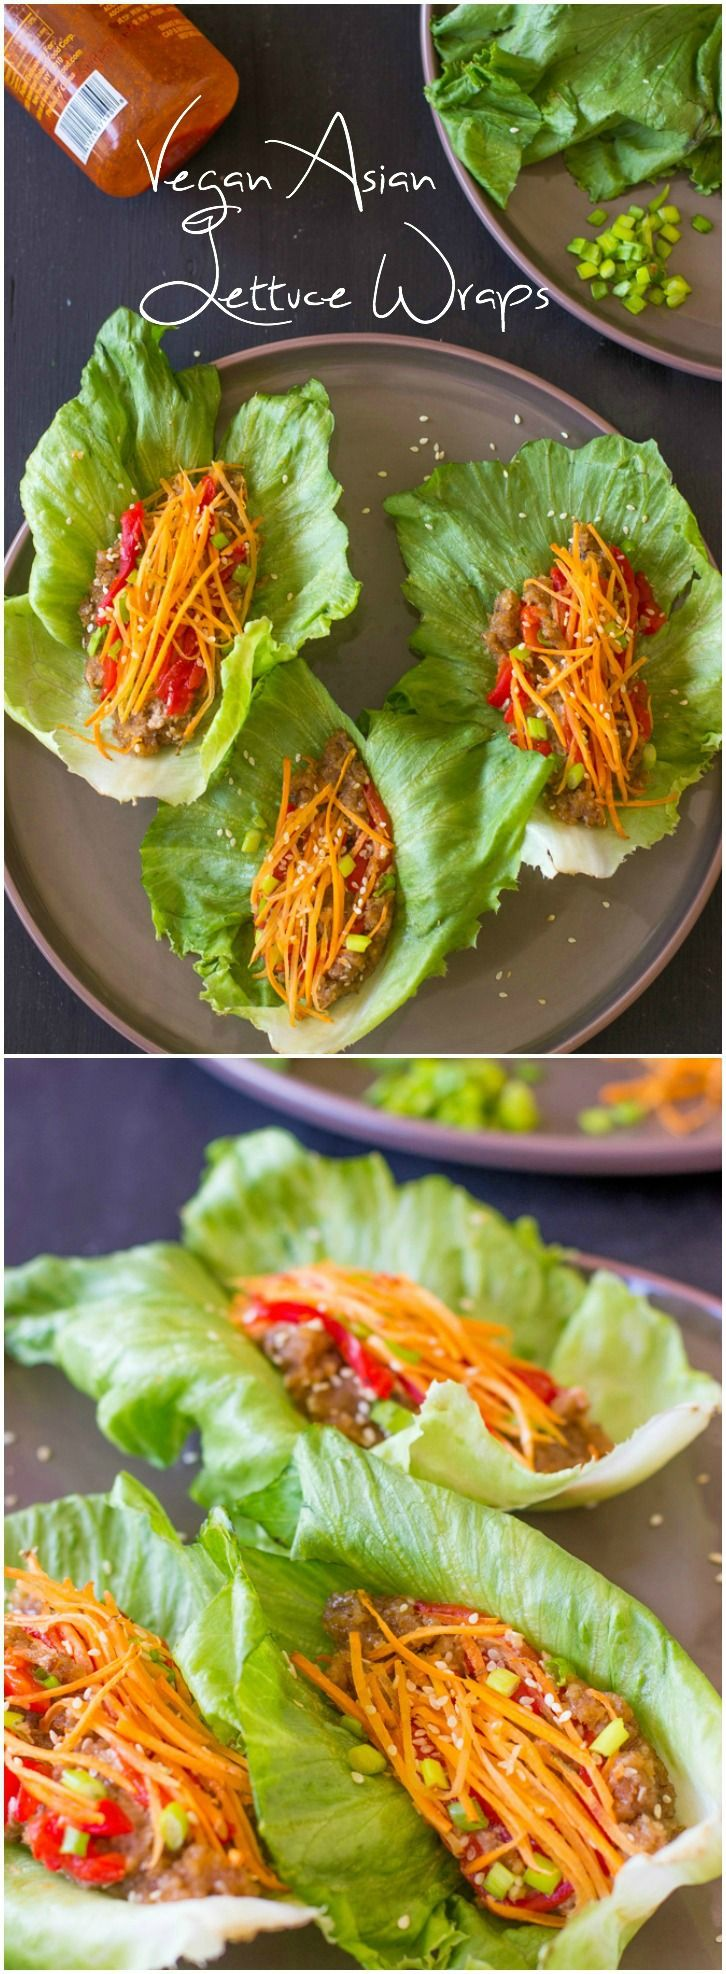 Easy recipe for asian lettuce wraps